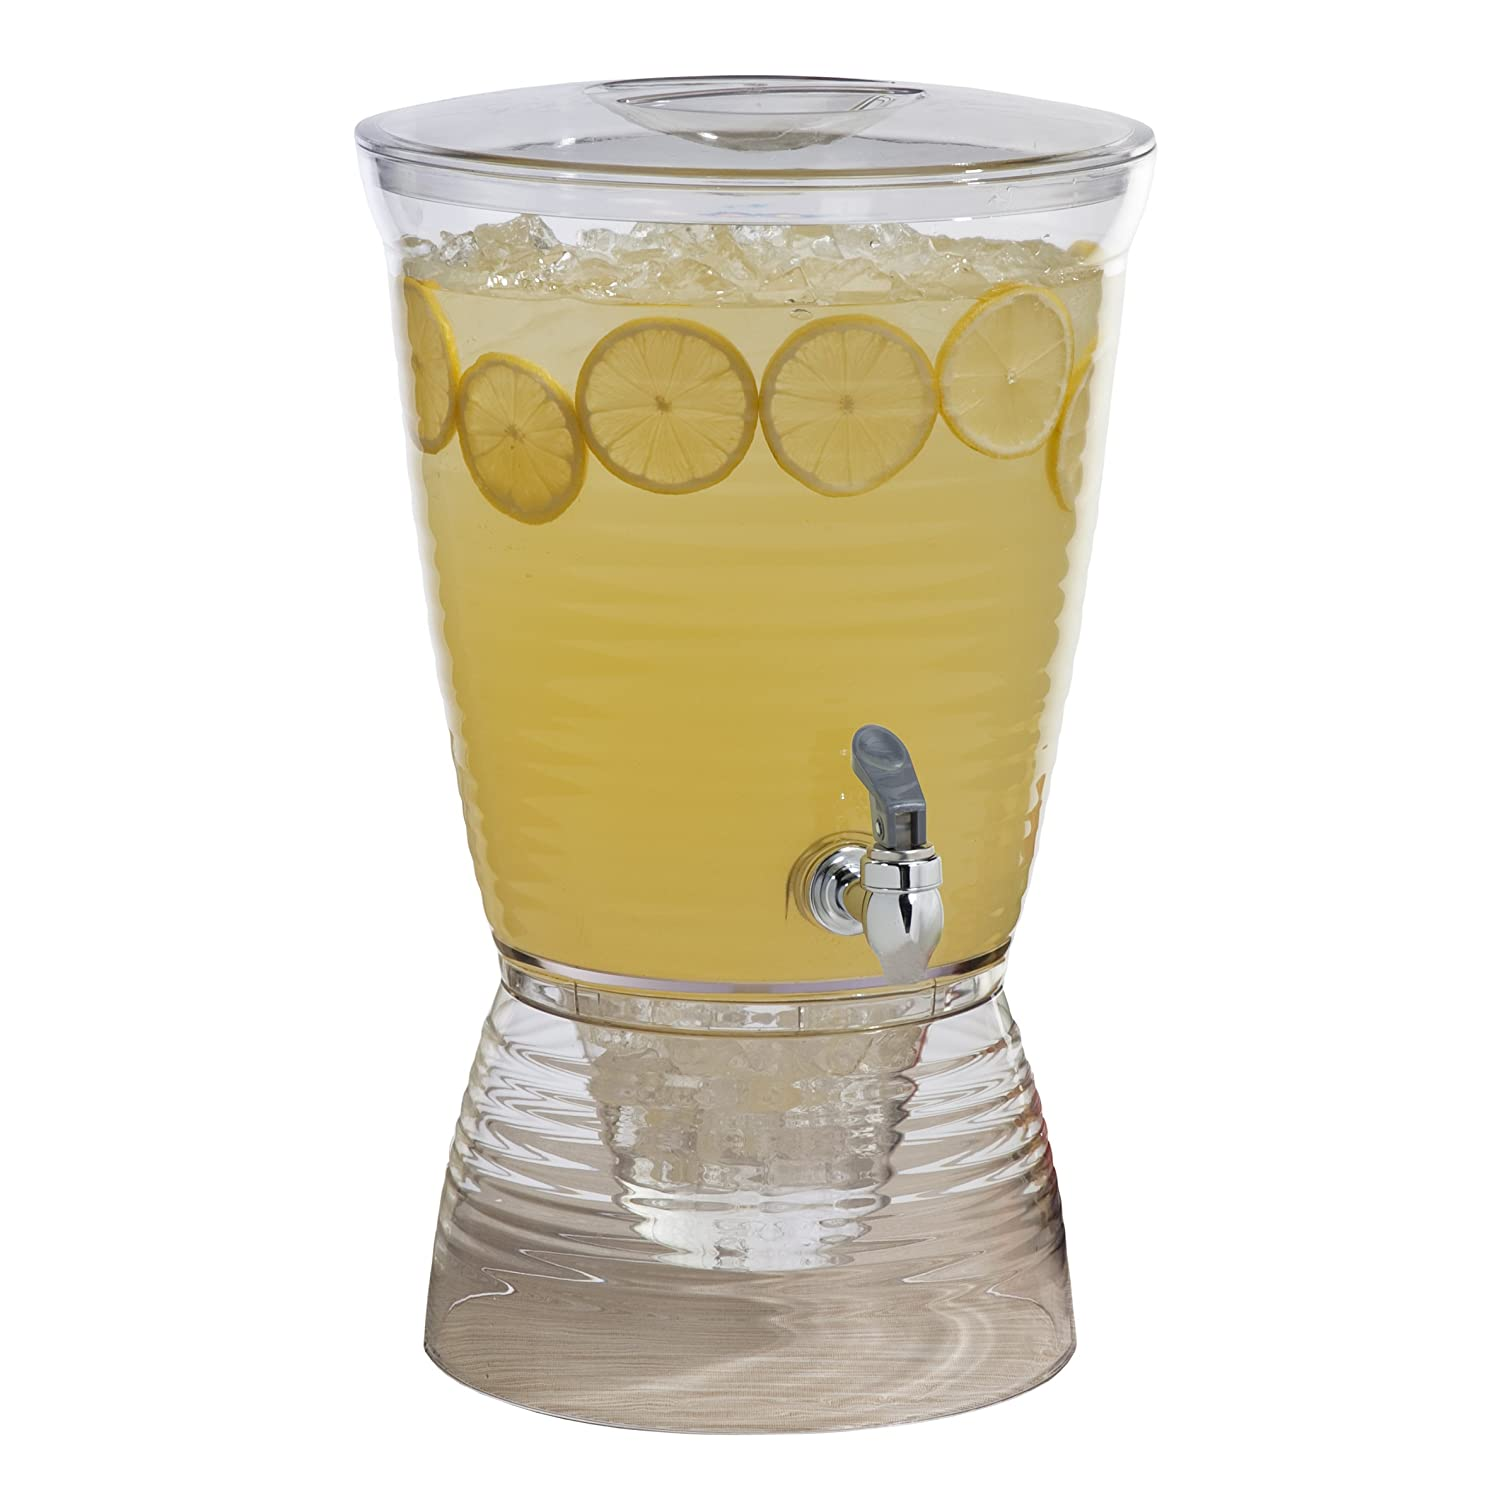 Large 2 Gallon Beverage Dispenser on Stand with Spout – Ice Base and Core Keep Juice and Drinks Cold – Shatterproof Acrylic Jug with Fruit and Tea Infuser and Spigot Perfect for Parties.